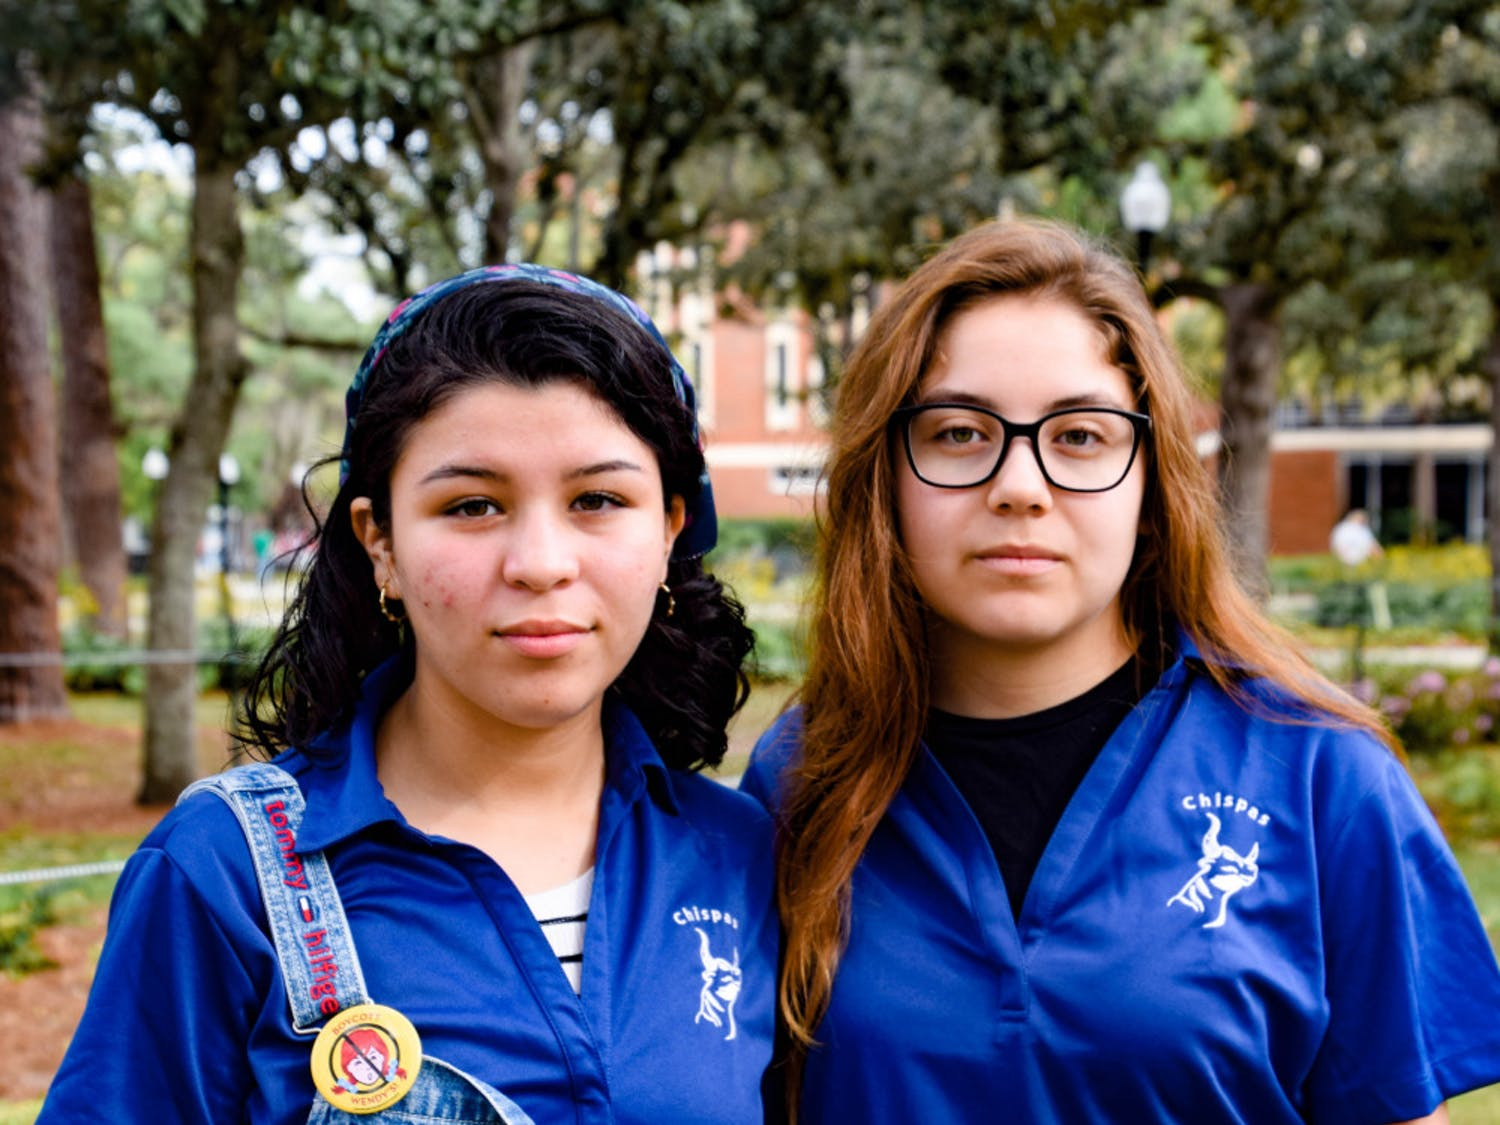 Michell Hernandez, a 22-year-old UF microbiology and cell science senior, and Saira Gonzalez, an 18-year-old UF anthropology sophomore, work with UF Chispas. Both are DACA recipients, and Hernandez is co-president, while Gonzalez is the assistant membership director.